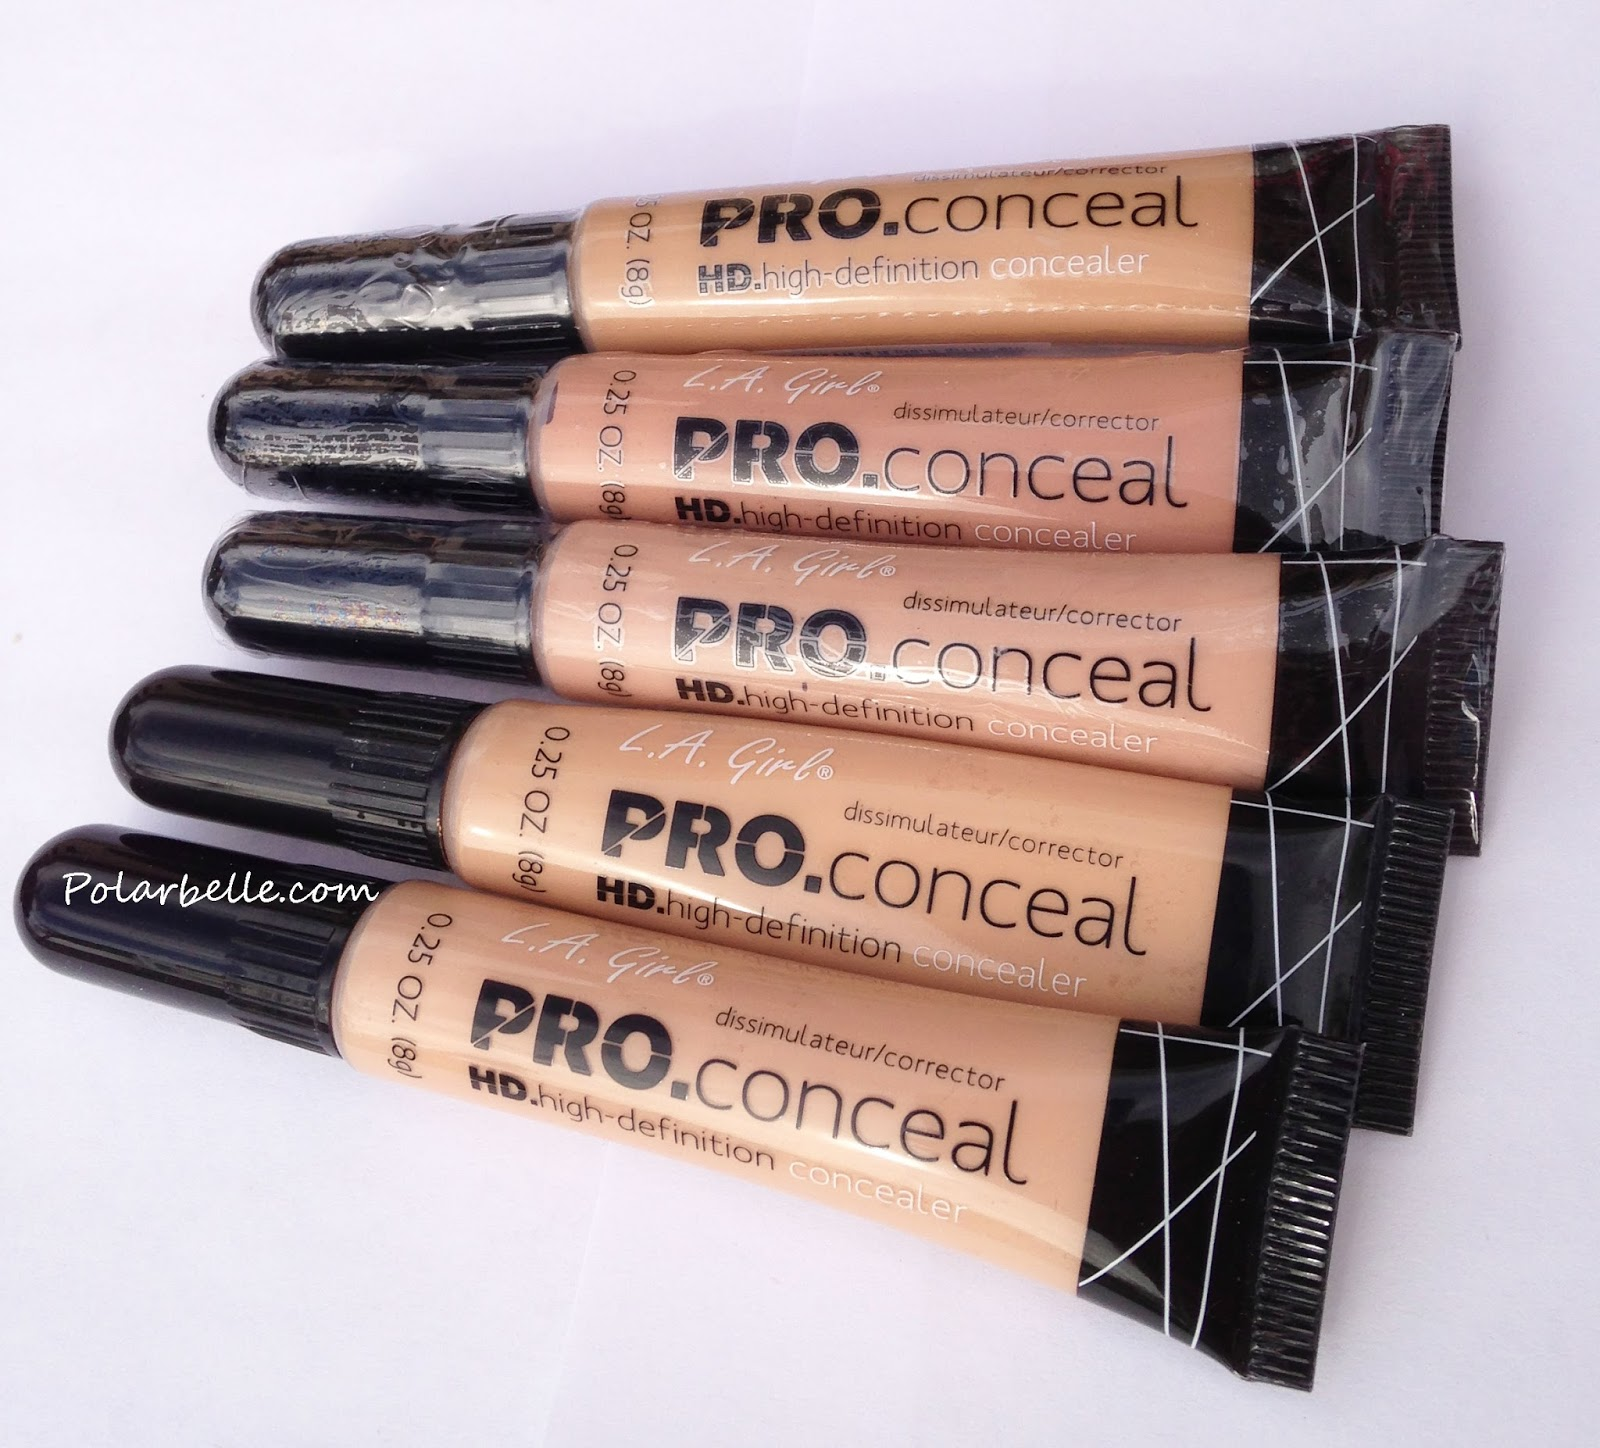 Pro Conceal, HD, High definition concealer, makeup